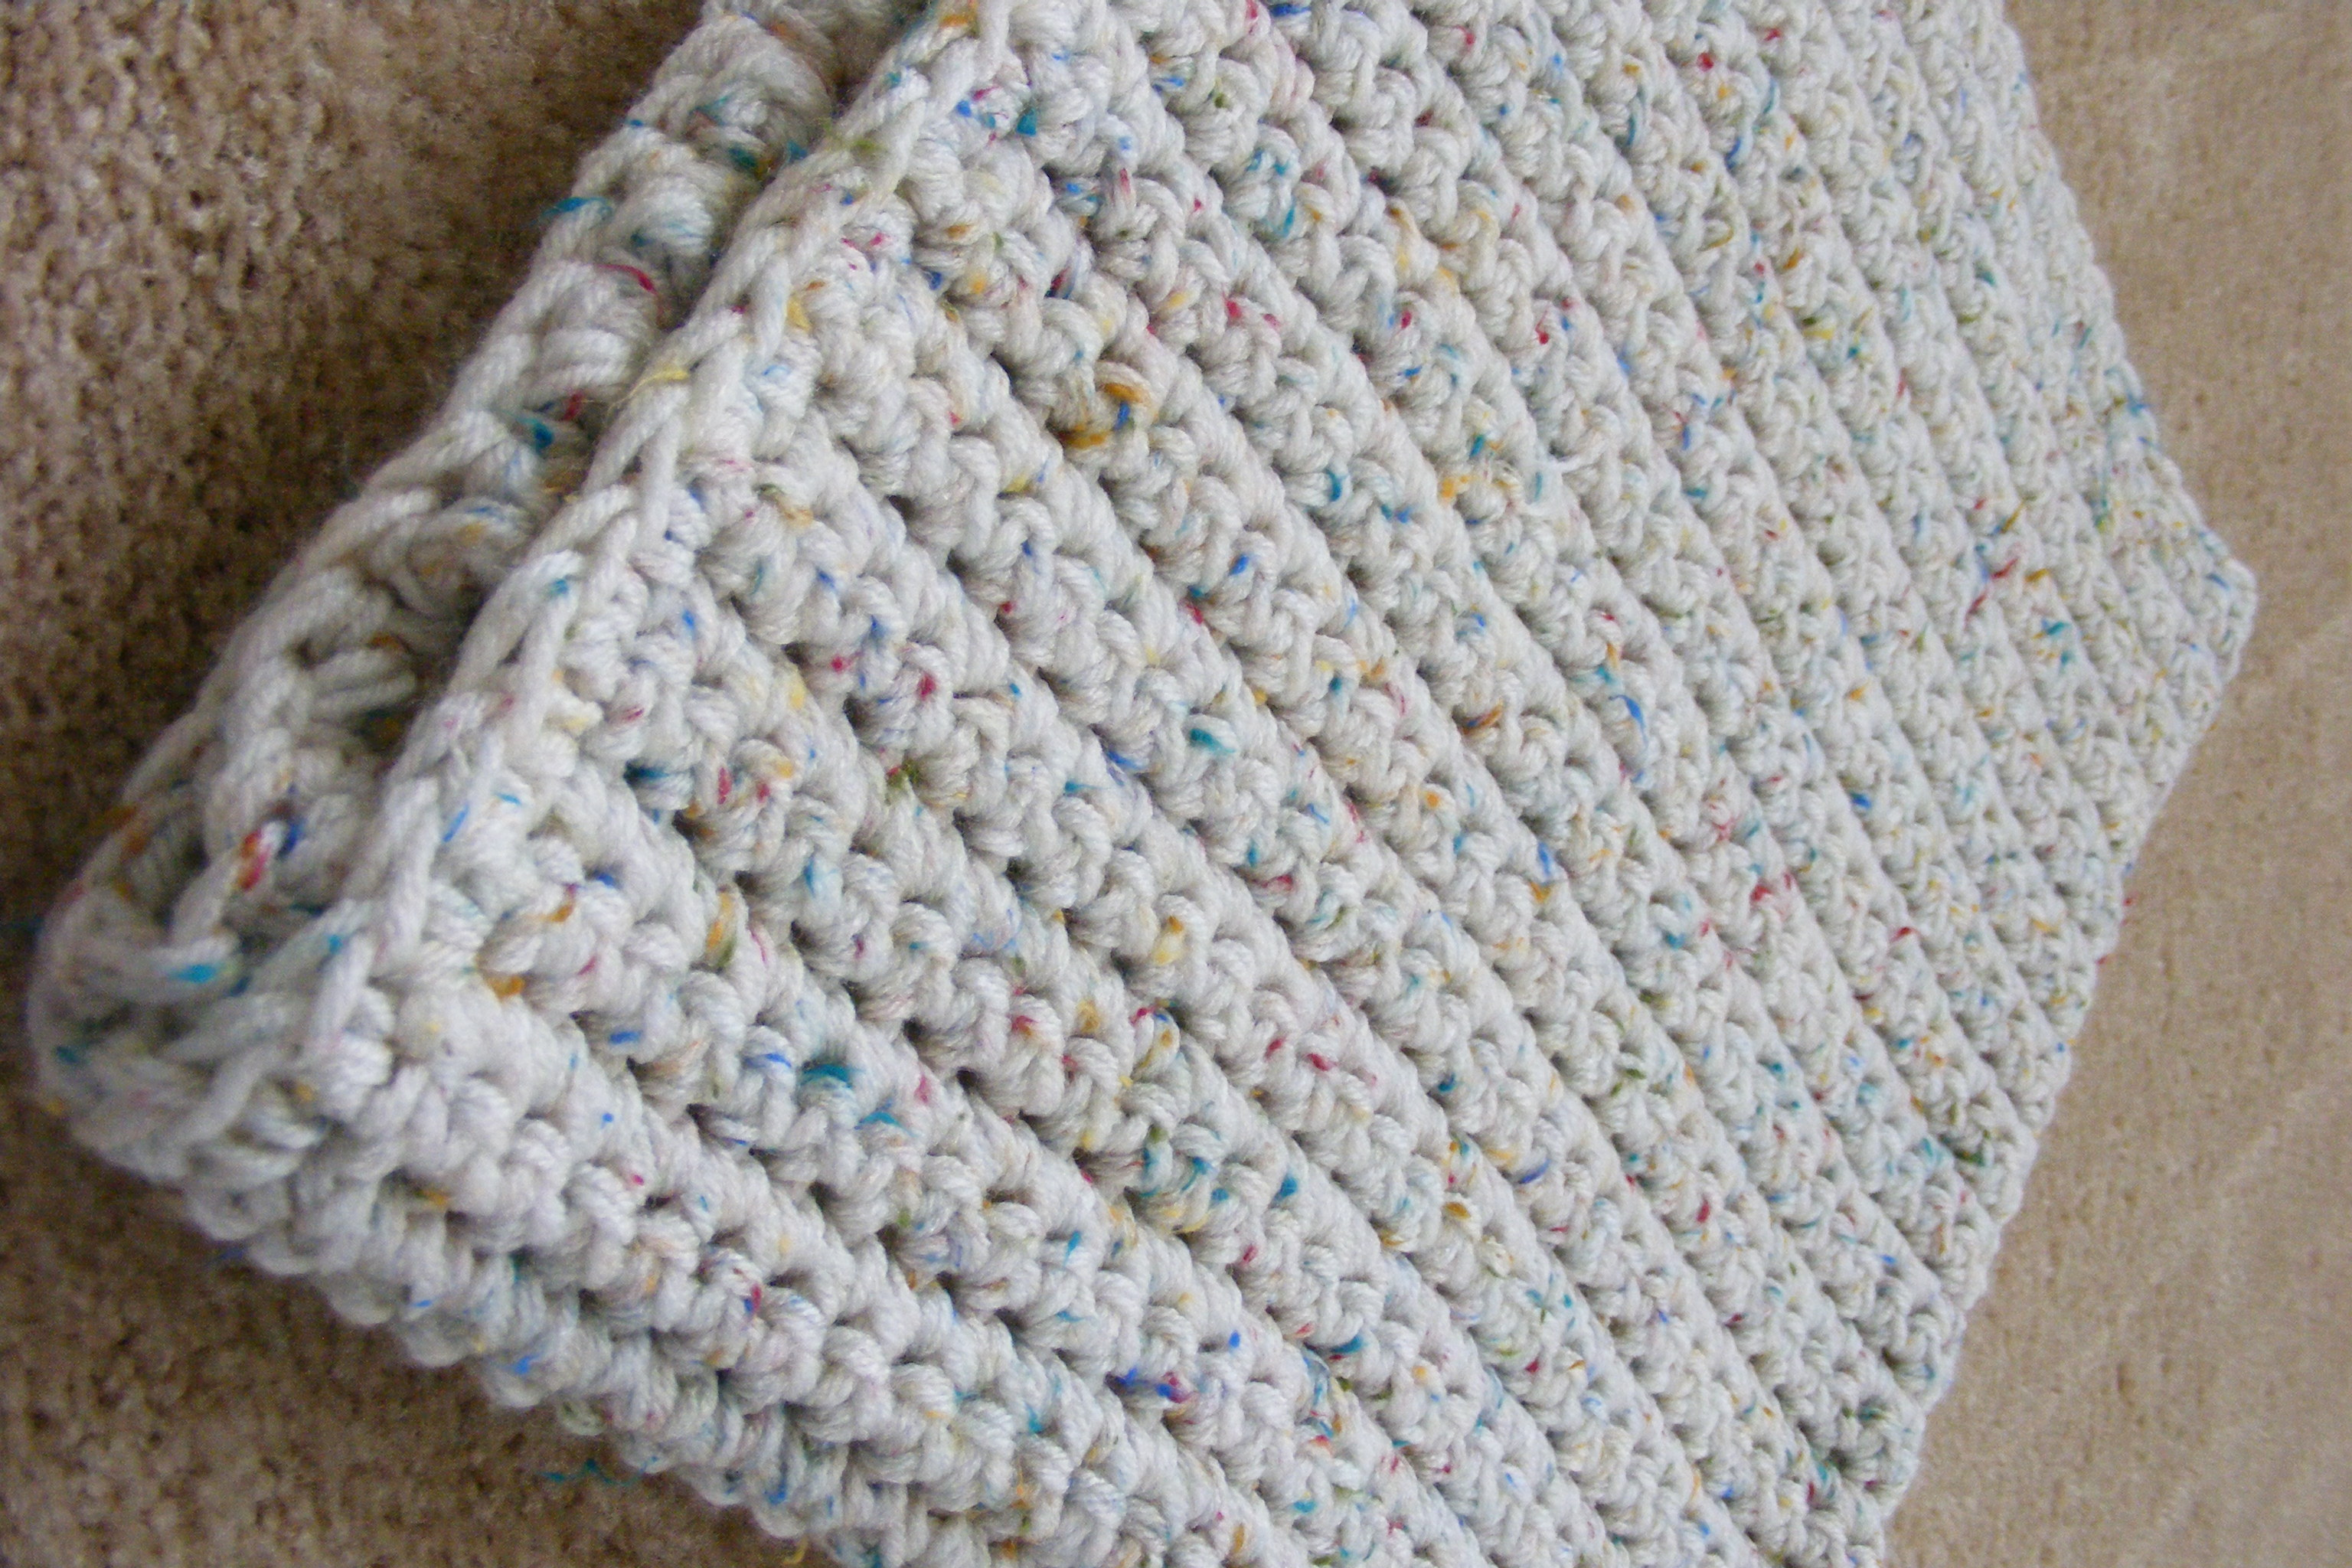 Crochet Patterns Easy Blankets : CROCHET PATTERN BLANKETS - FREE PATTERNS